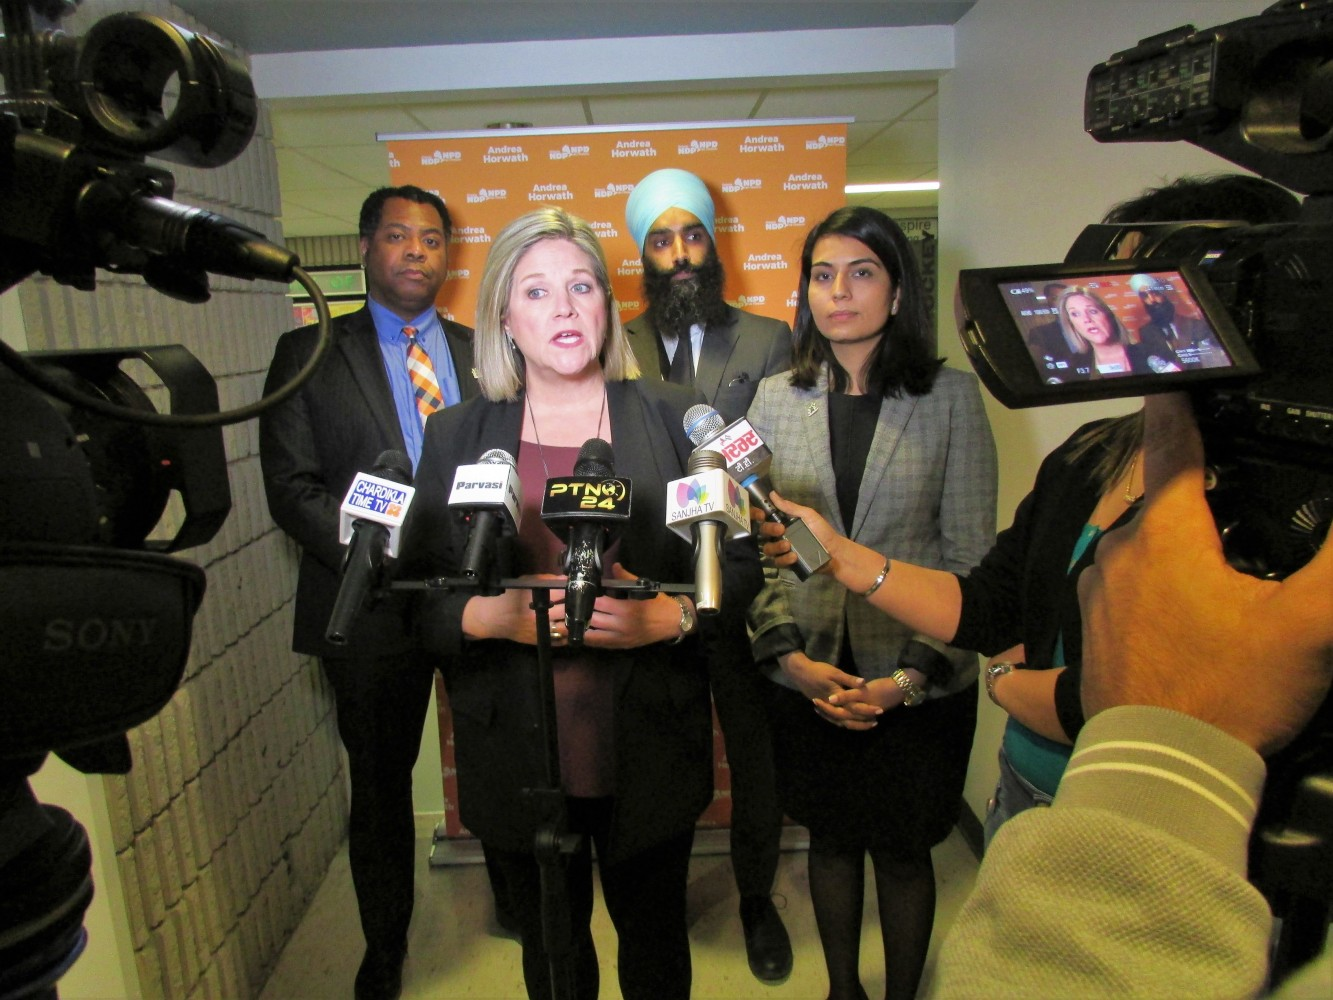 Horwath tables bill to curb Ford's power over cities, saying he meddles to take revenge